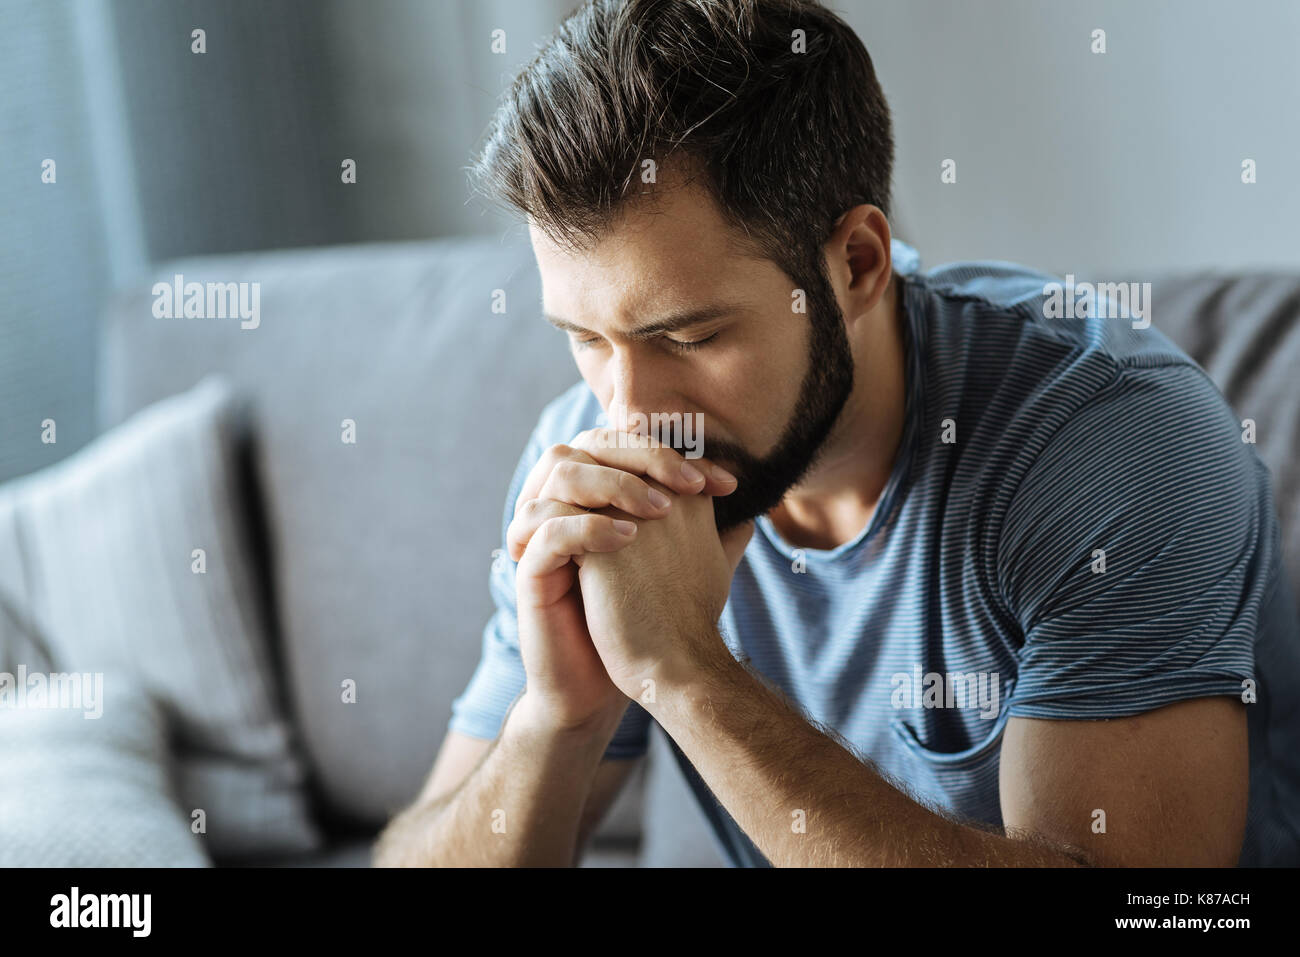 Unhappy young man holding his chin - Stock Image